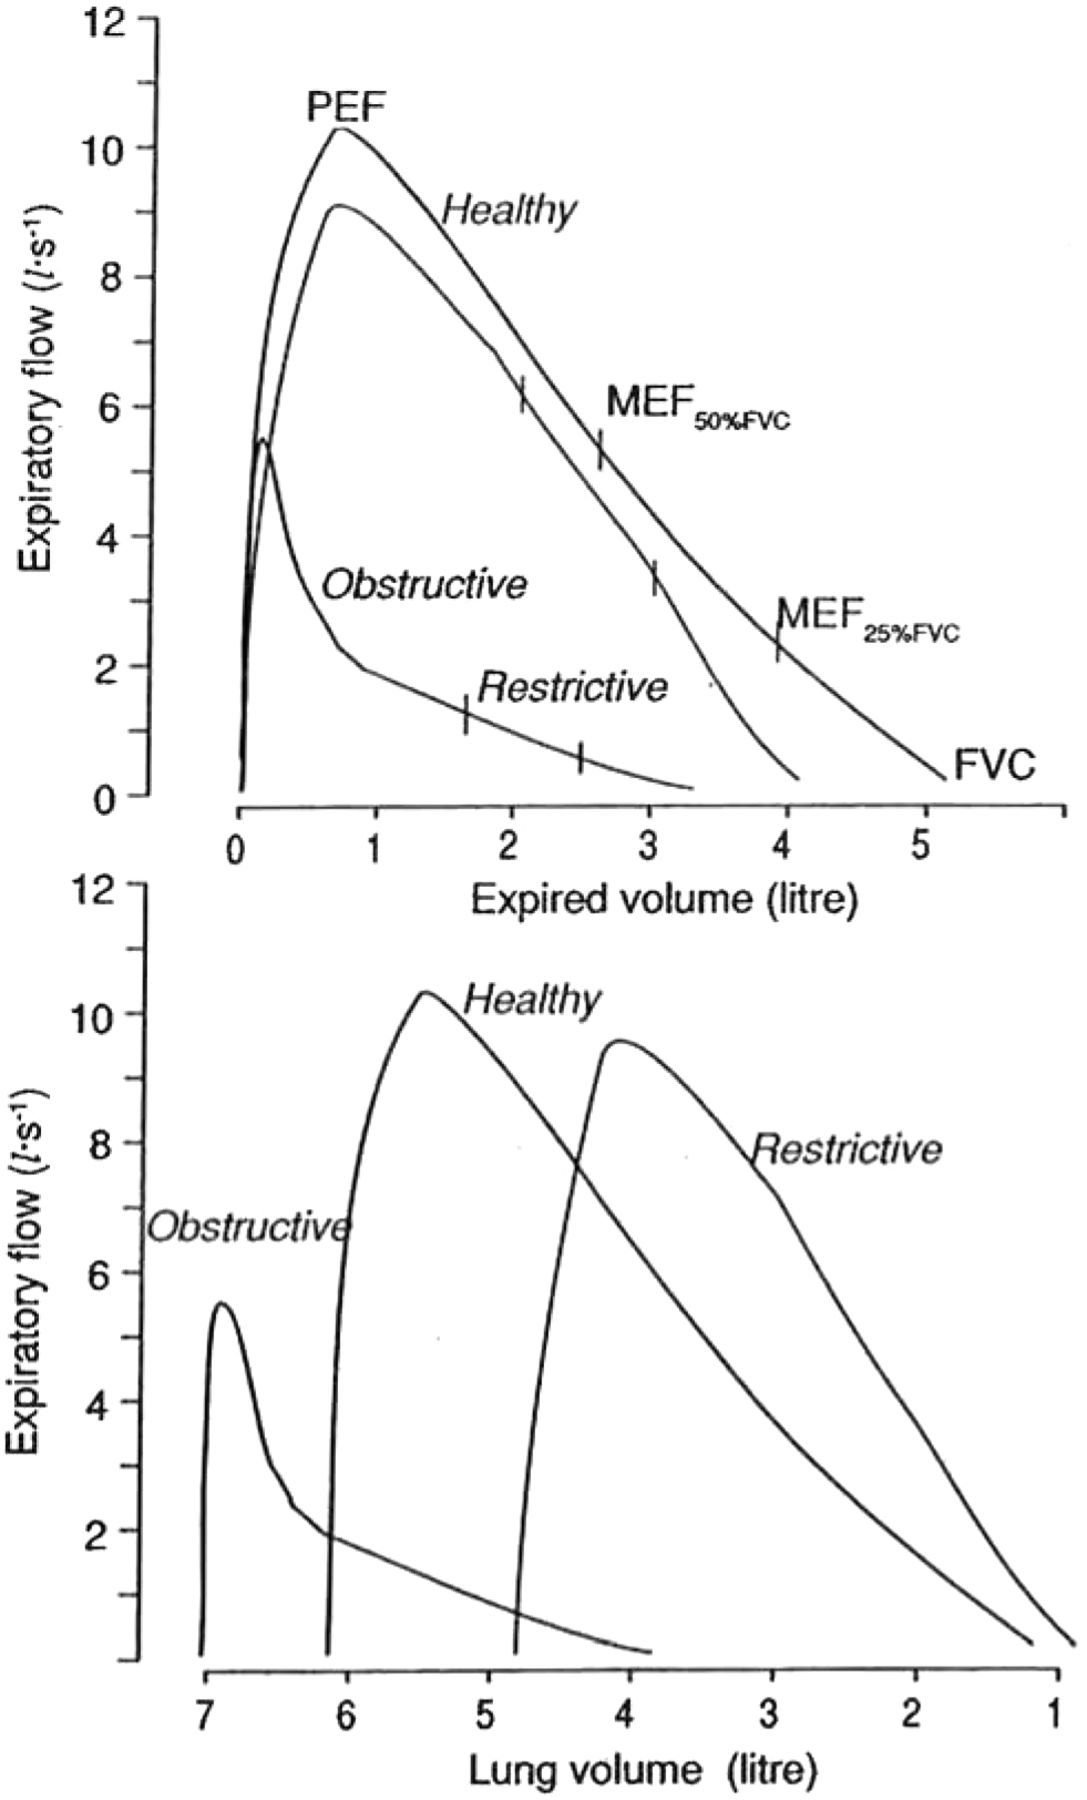 Lung Volumes And Forced Ventilatory Flows European Respiratory Society Topic Detect Open Loop Circuit Read 152 Times Previous Next Download Figure In New Tab